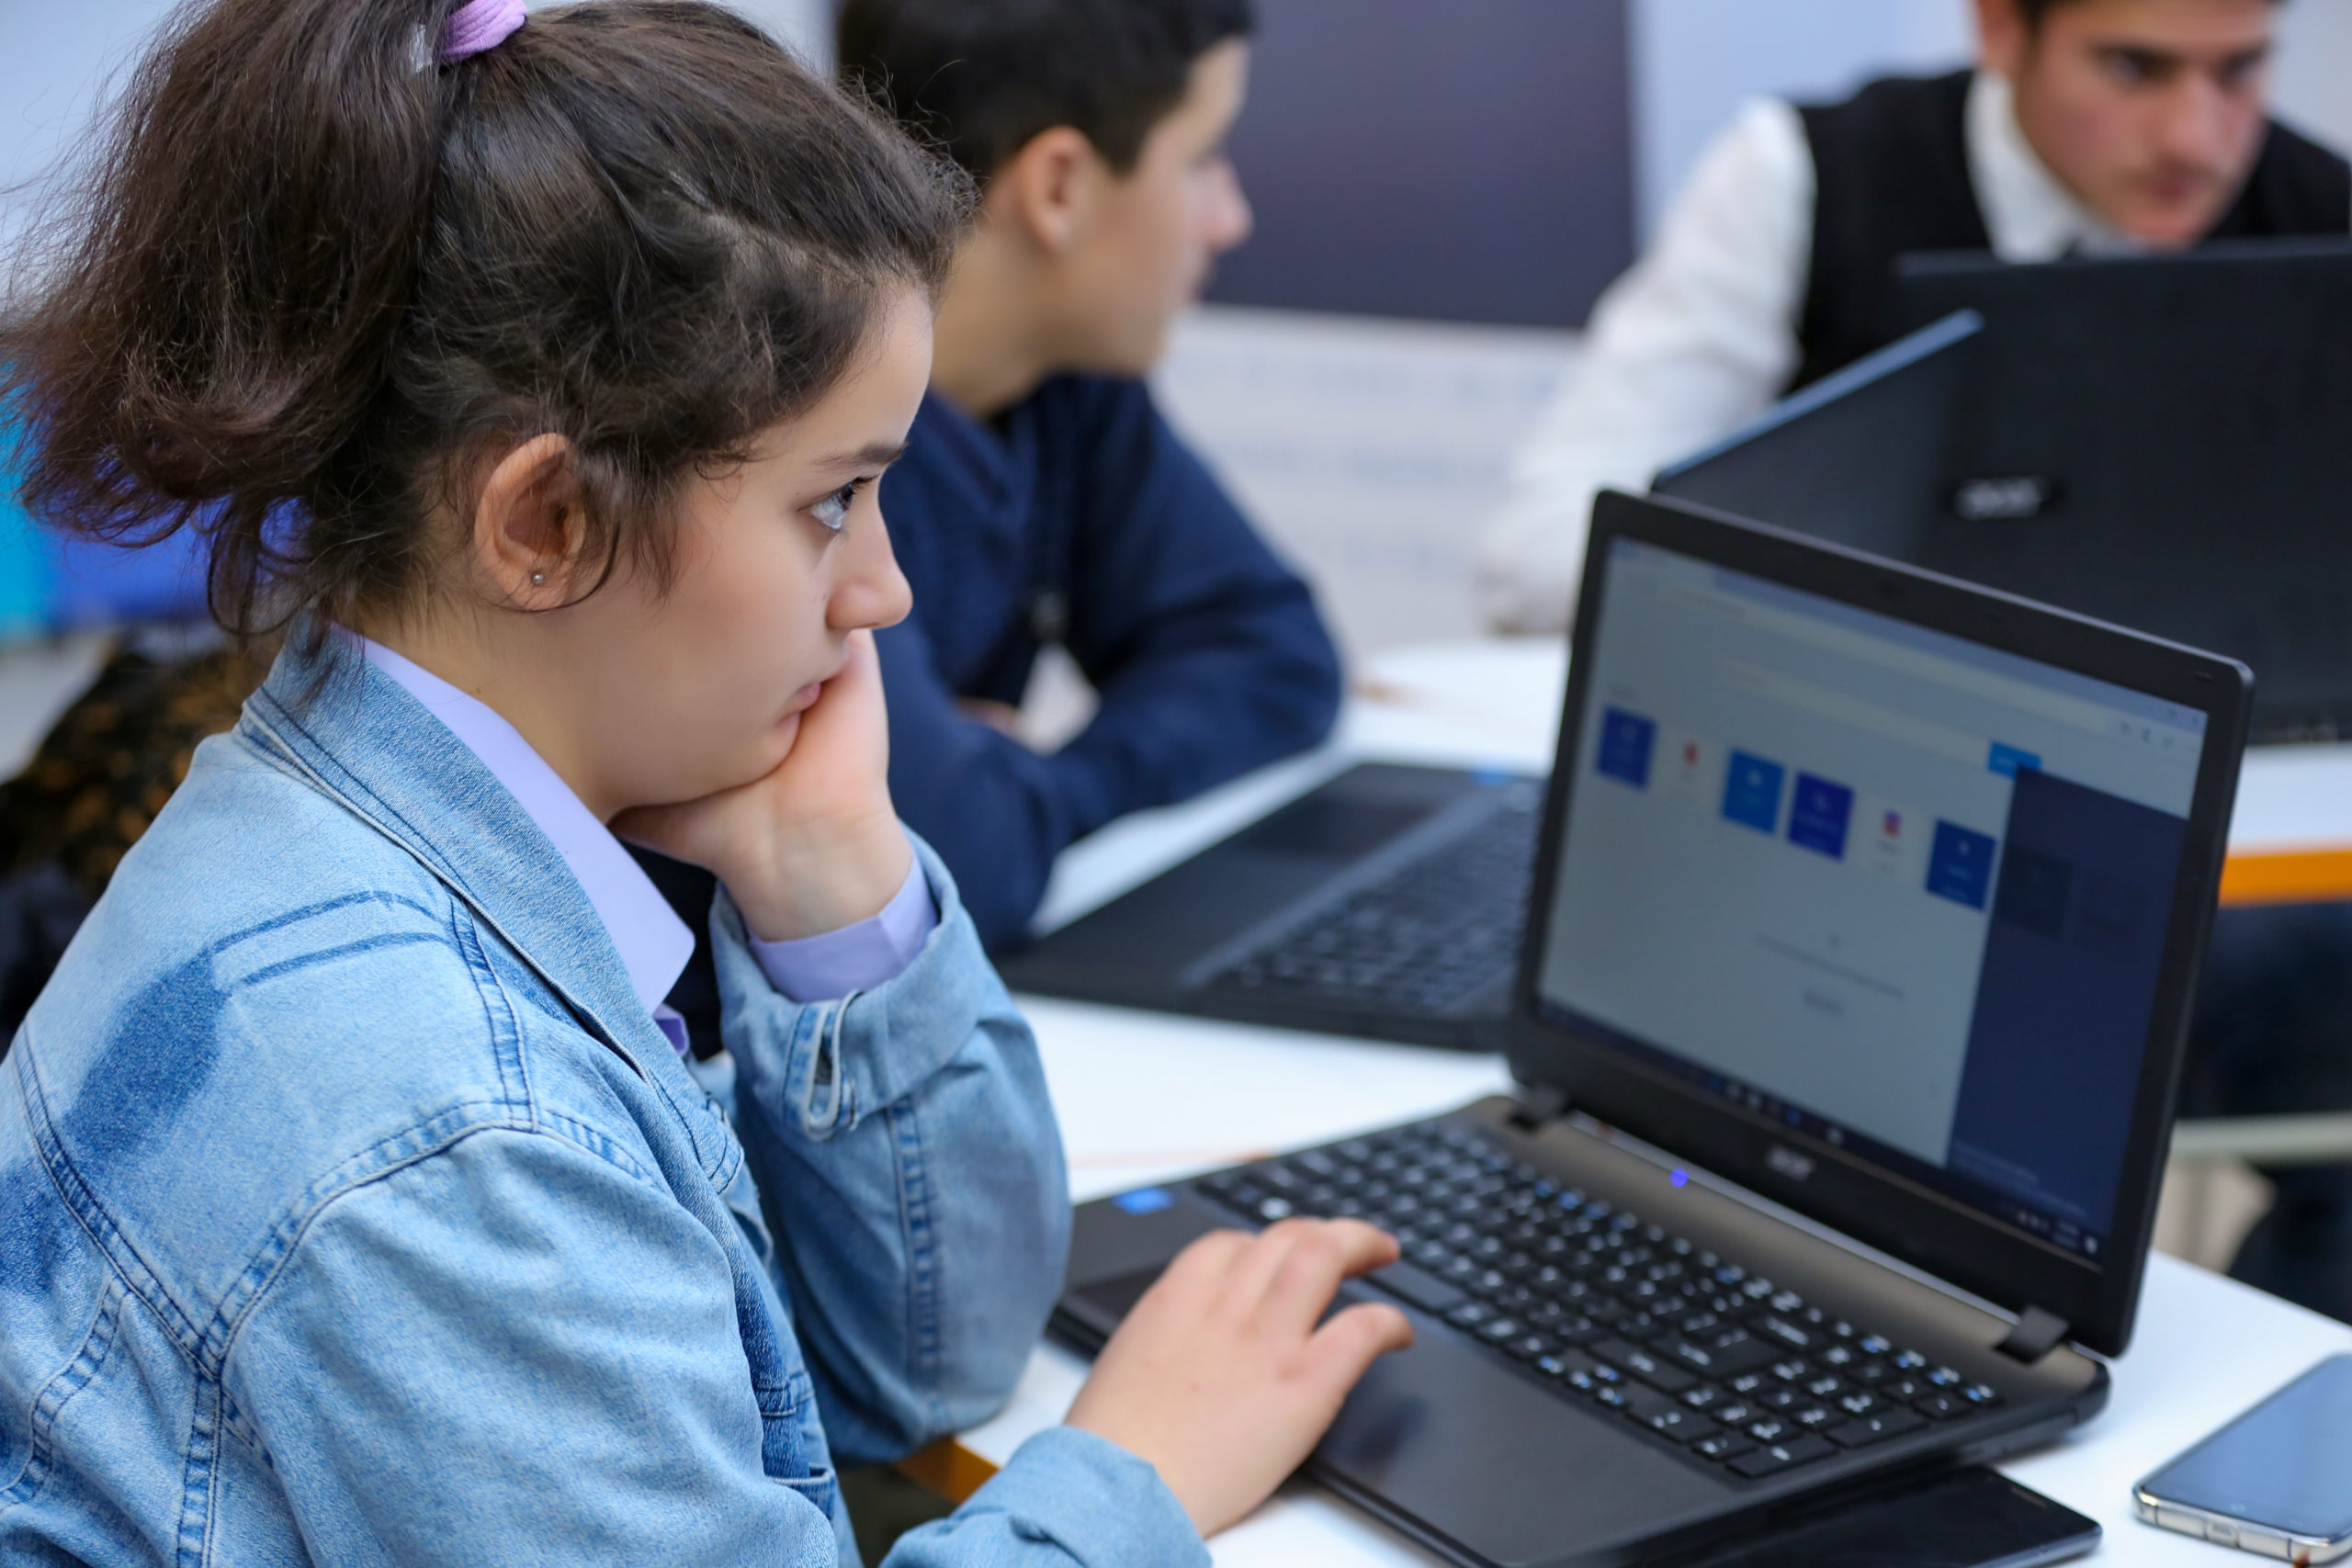 Albanian vet schools will soon benefit from an ict curriculum aligned with sector requirements